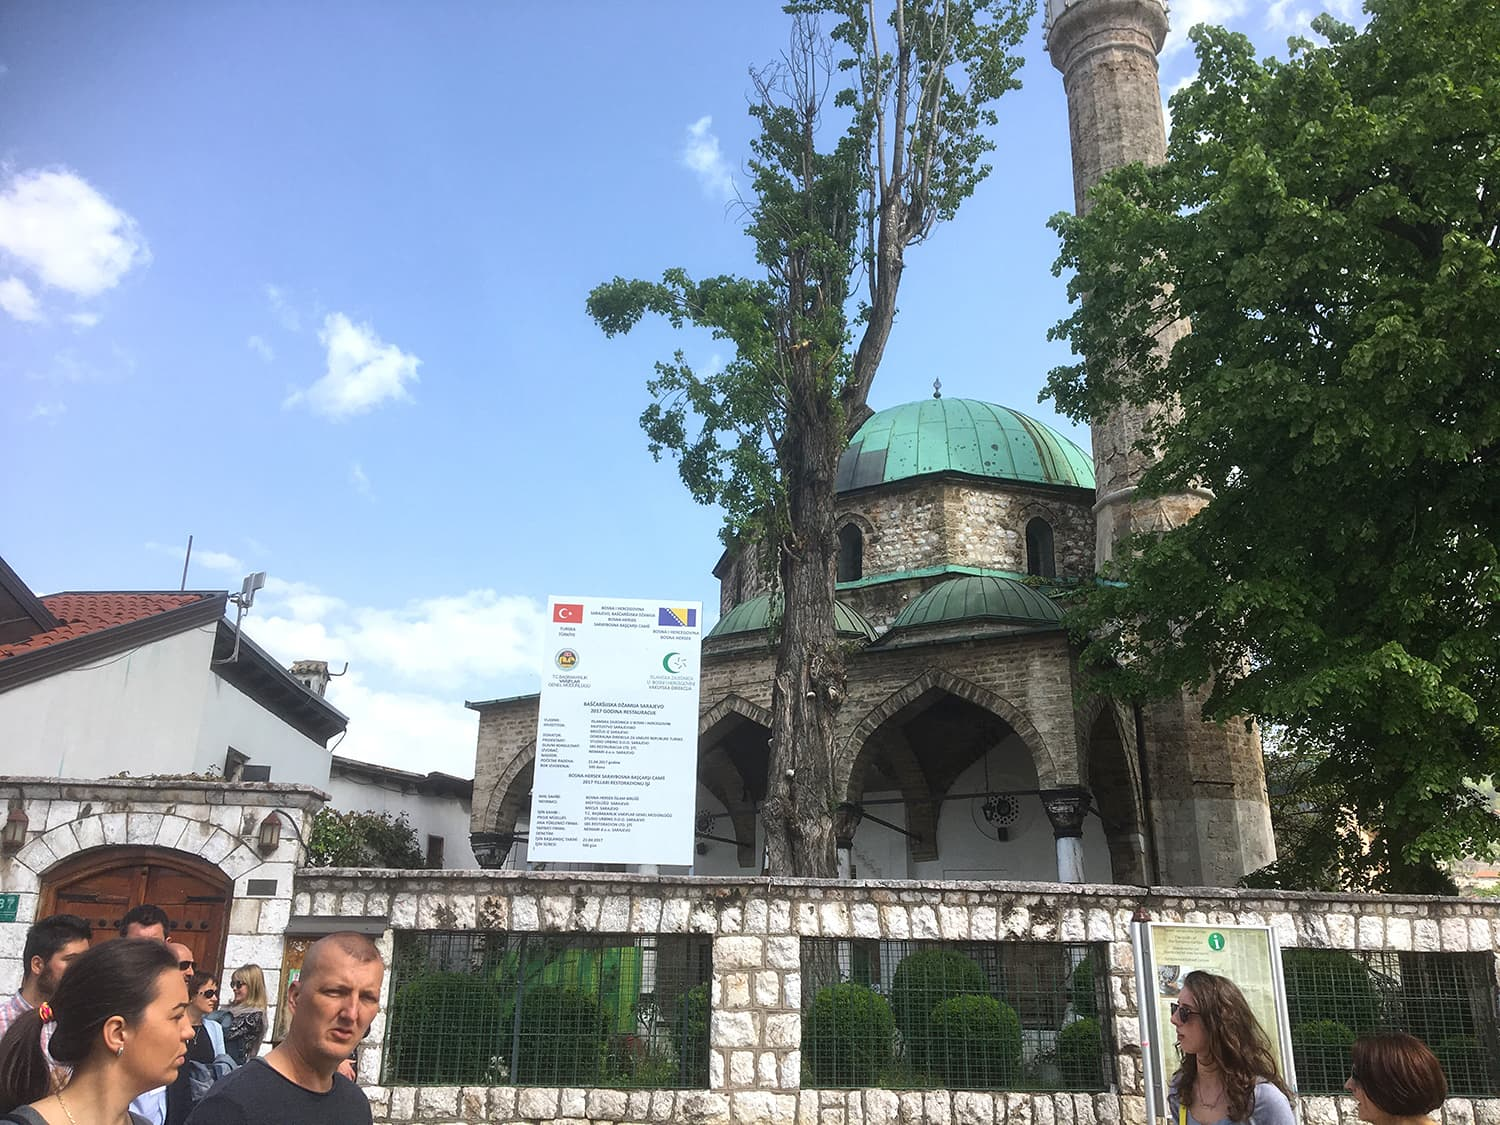 There are many beautiful Ottoman mosques around Sarajevo's old city.